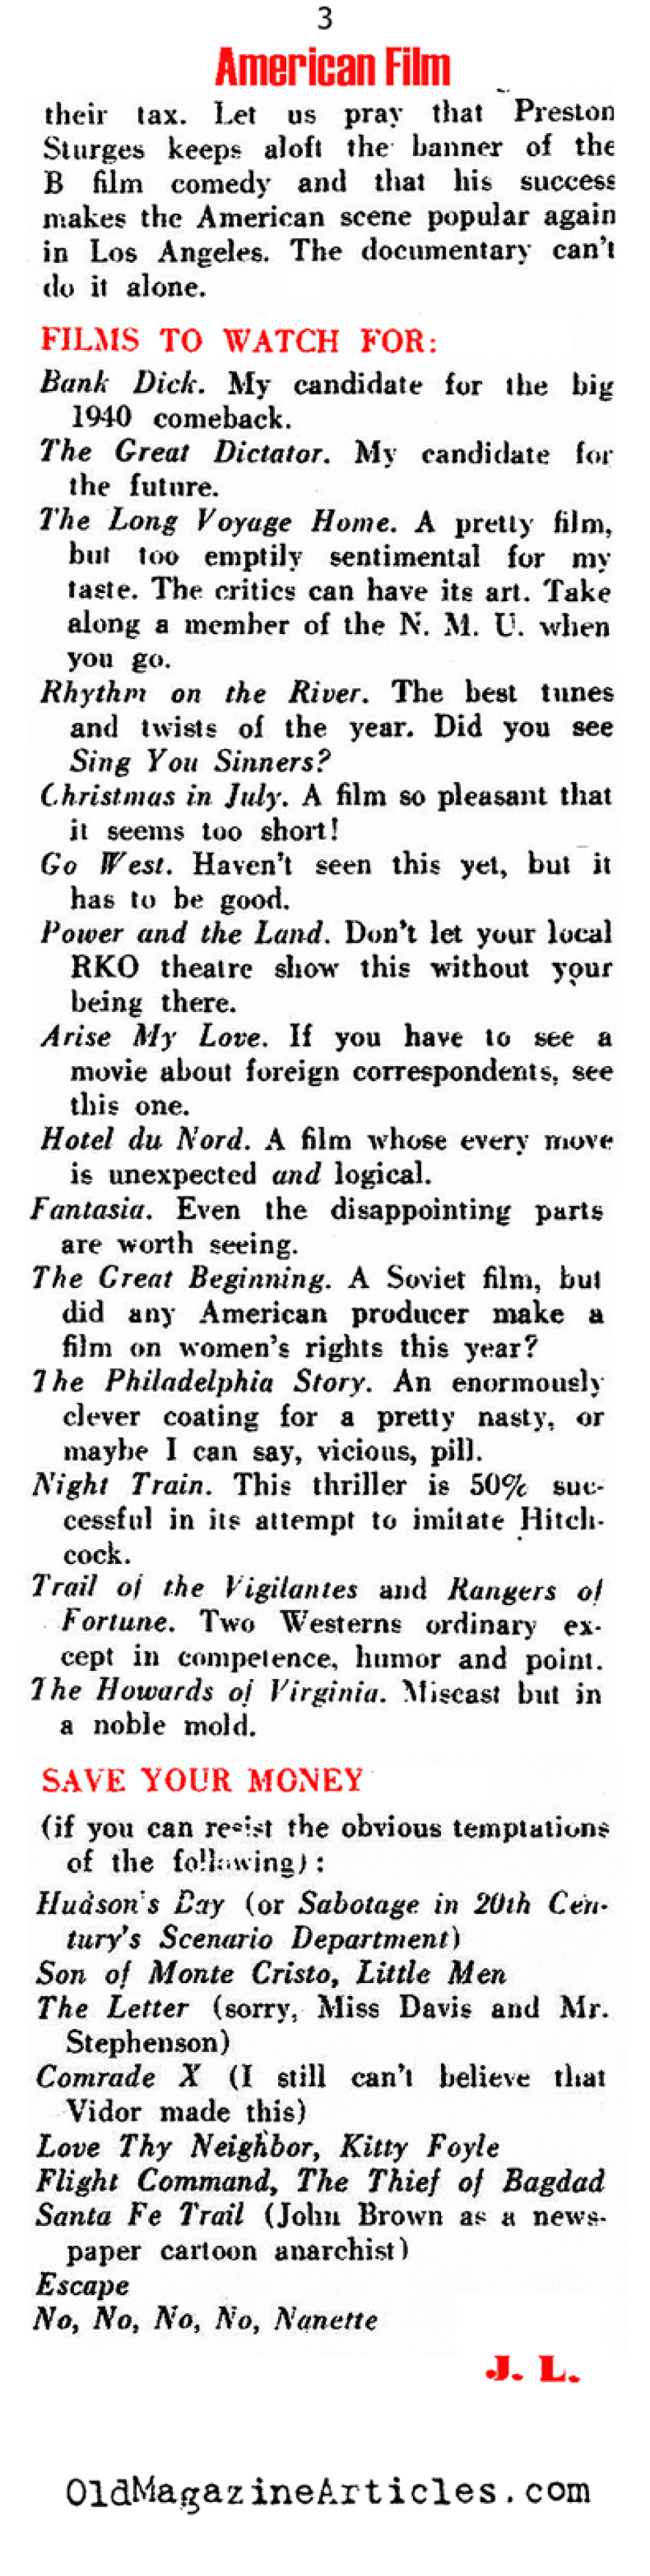 Thoughts on the American Films of 1941 (Direction Magazine, 1941)